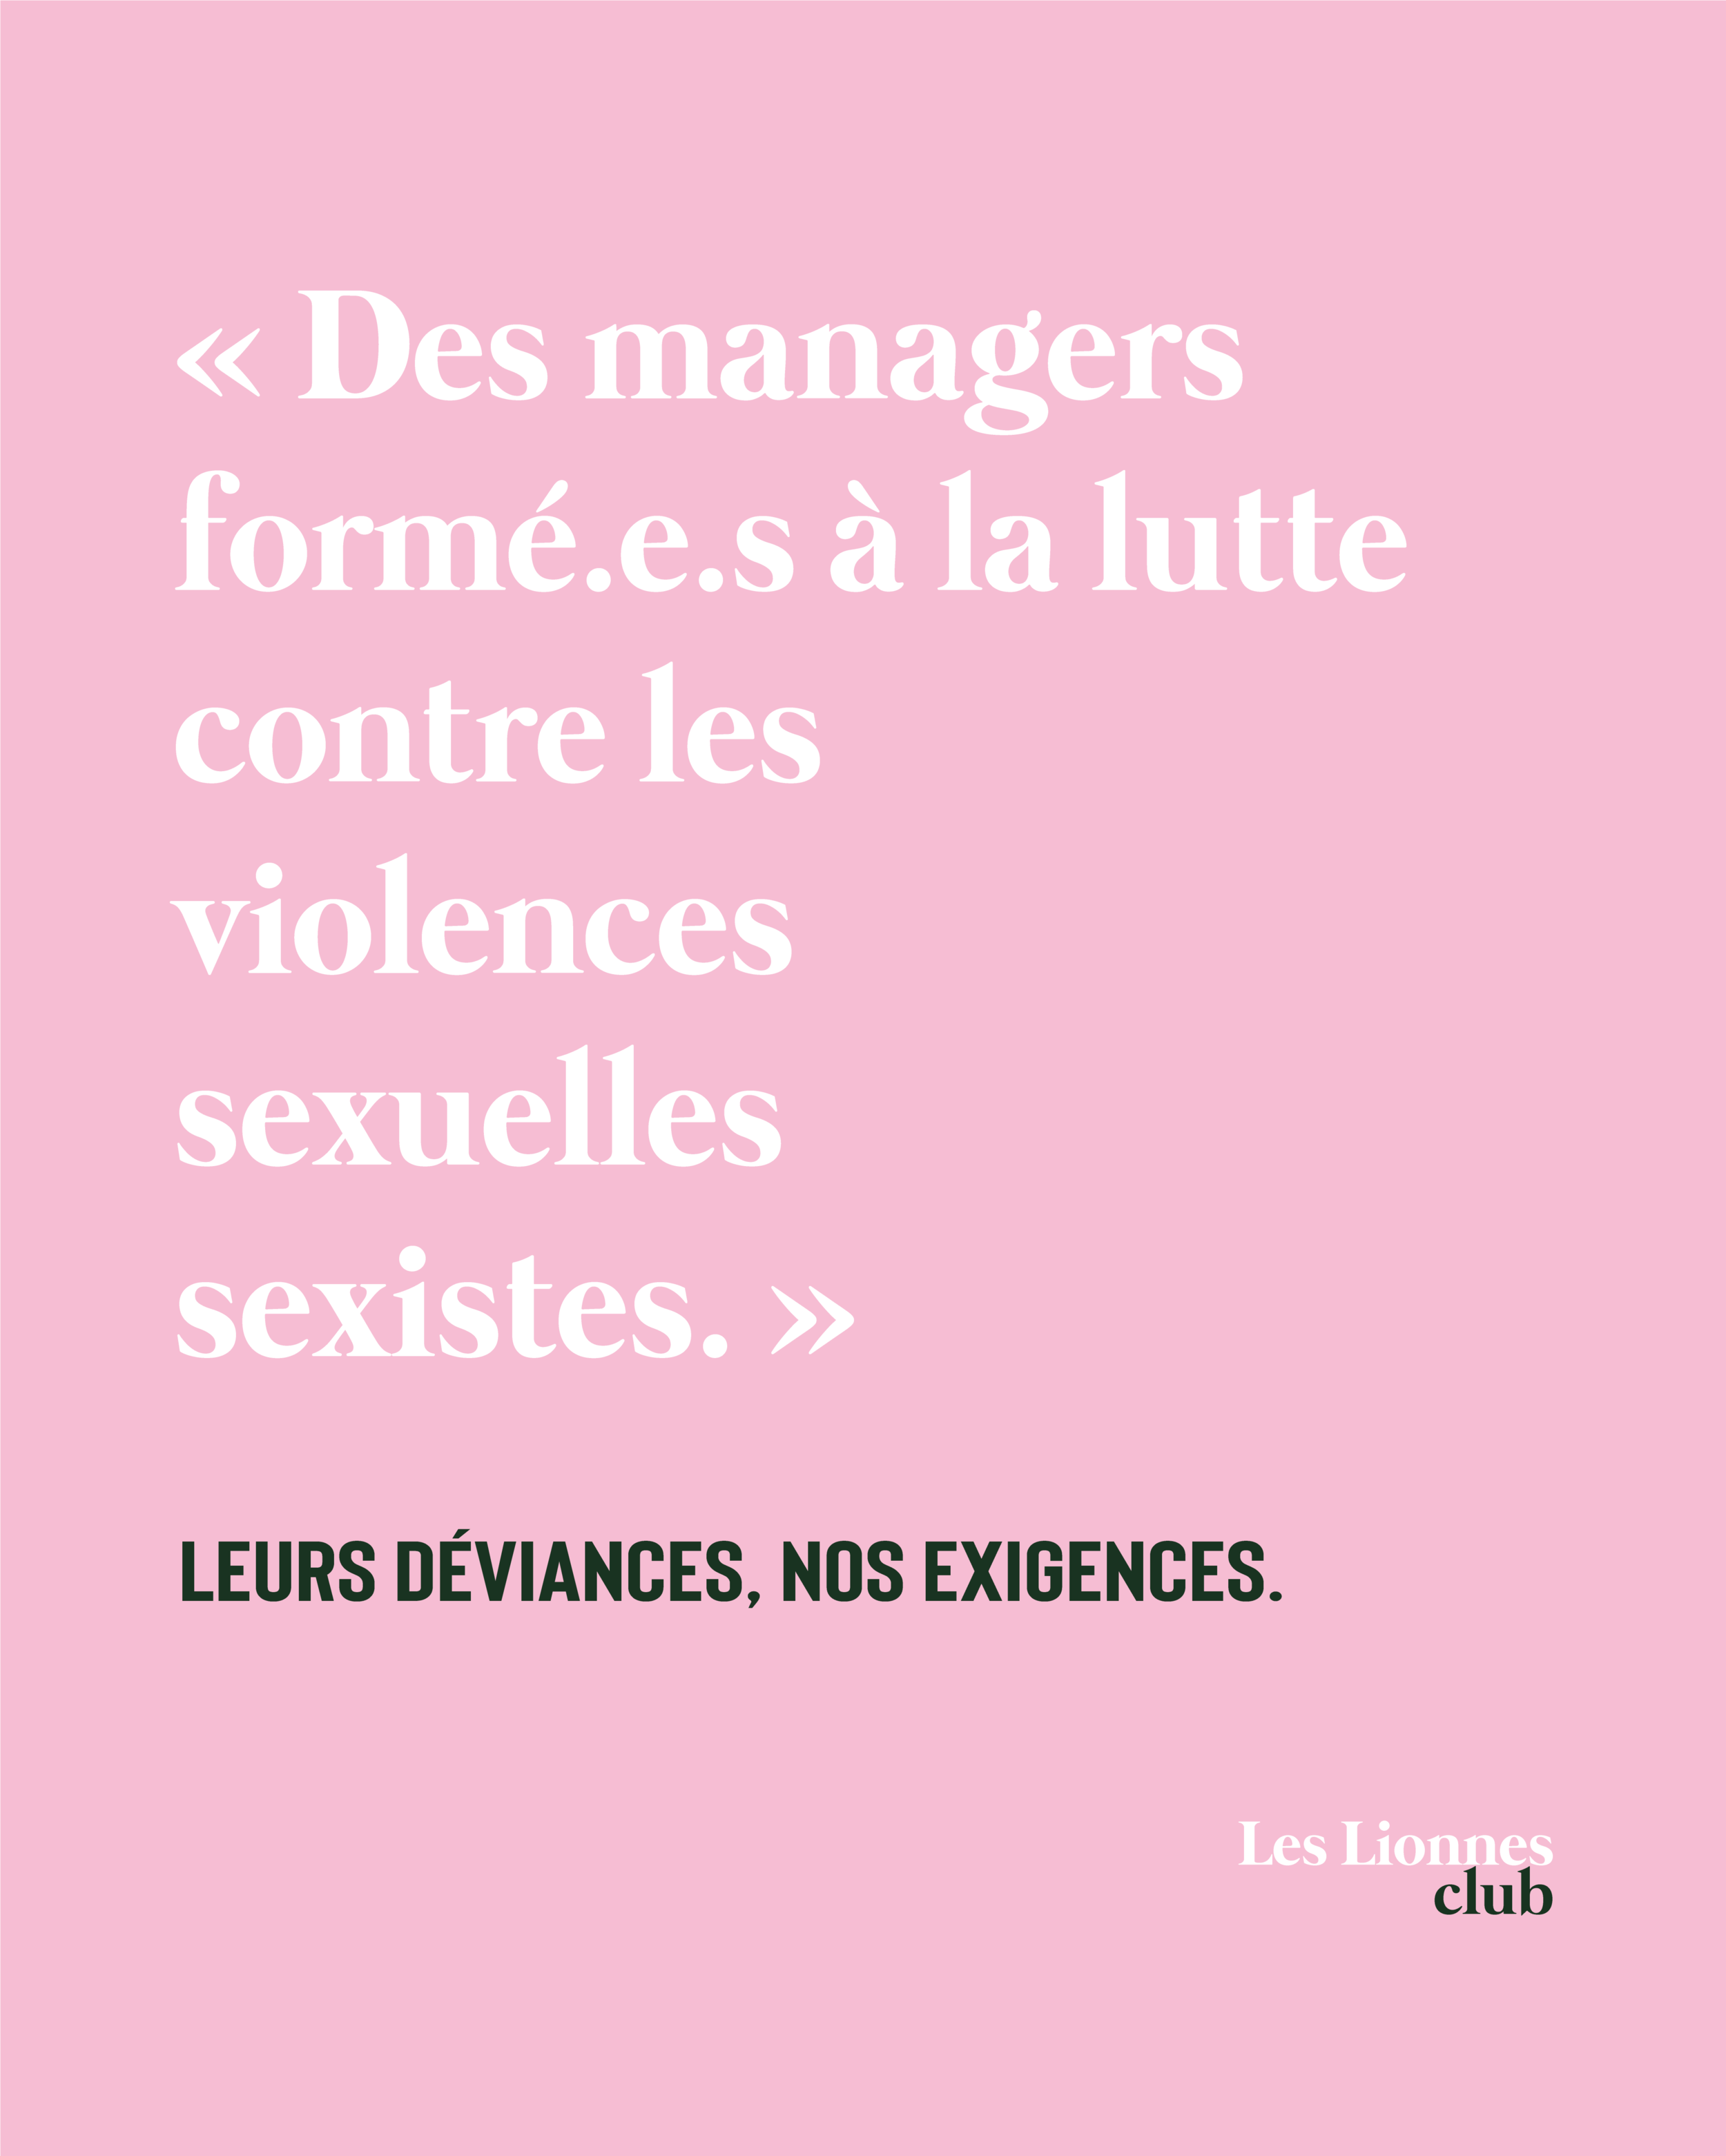 Managers_fr INSTA.png